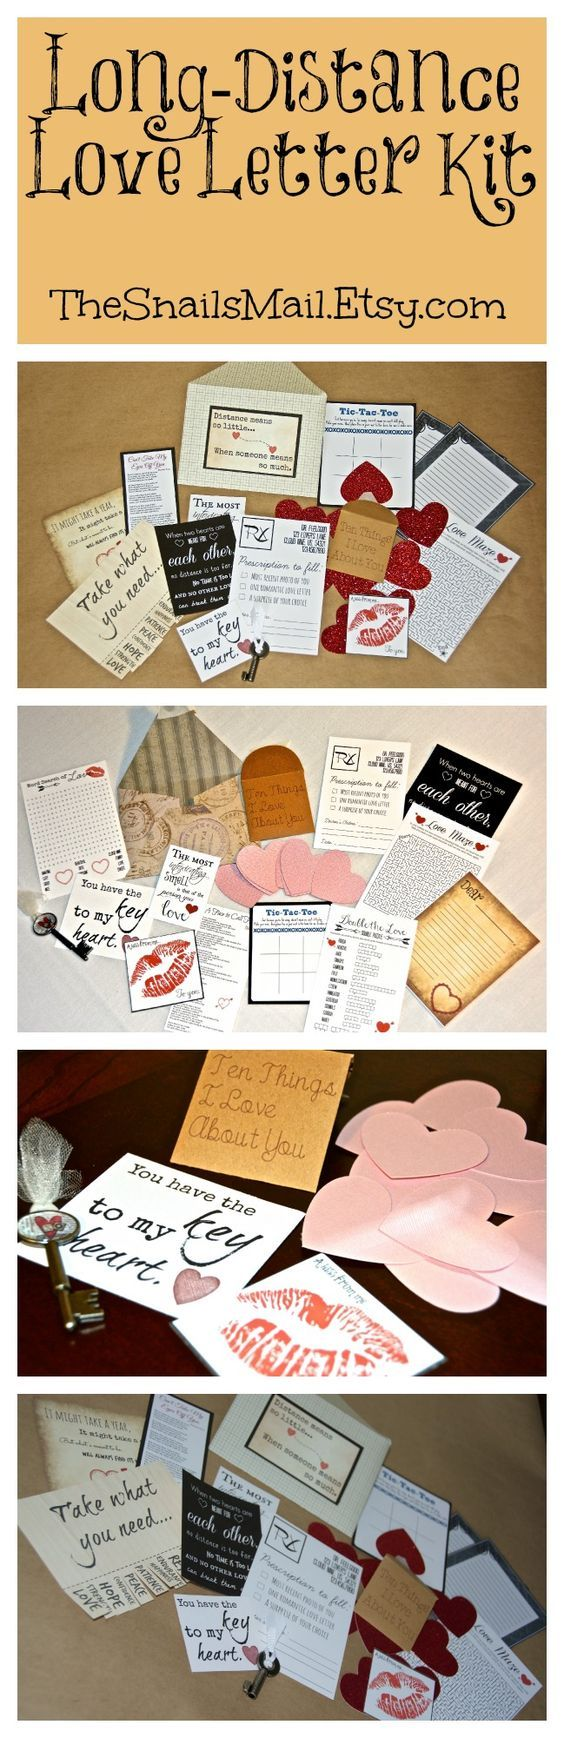 A Long-Distance Relationship Love Letter Kit. Perfect for that special someone you can't see every day!: